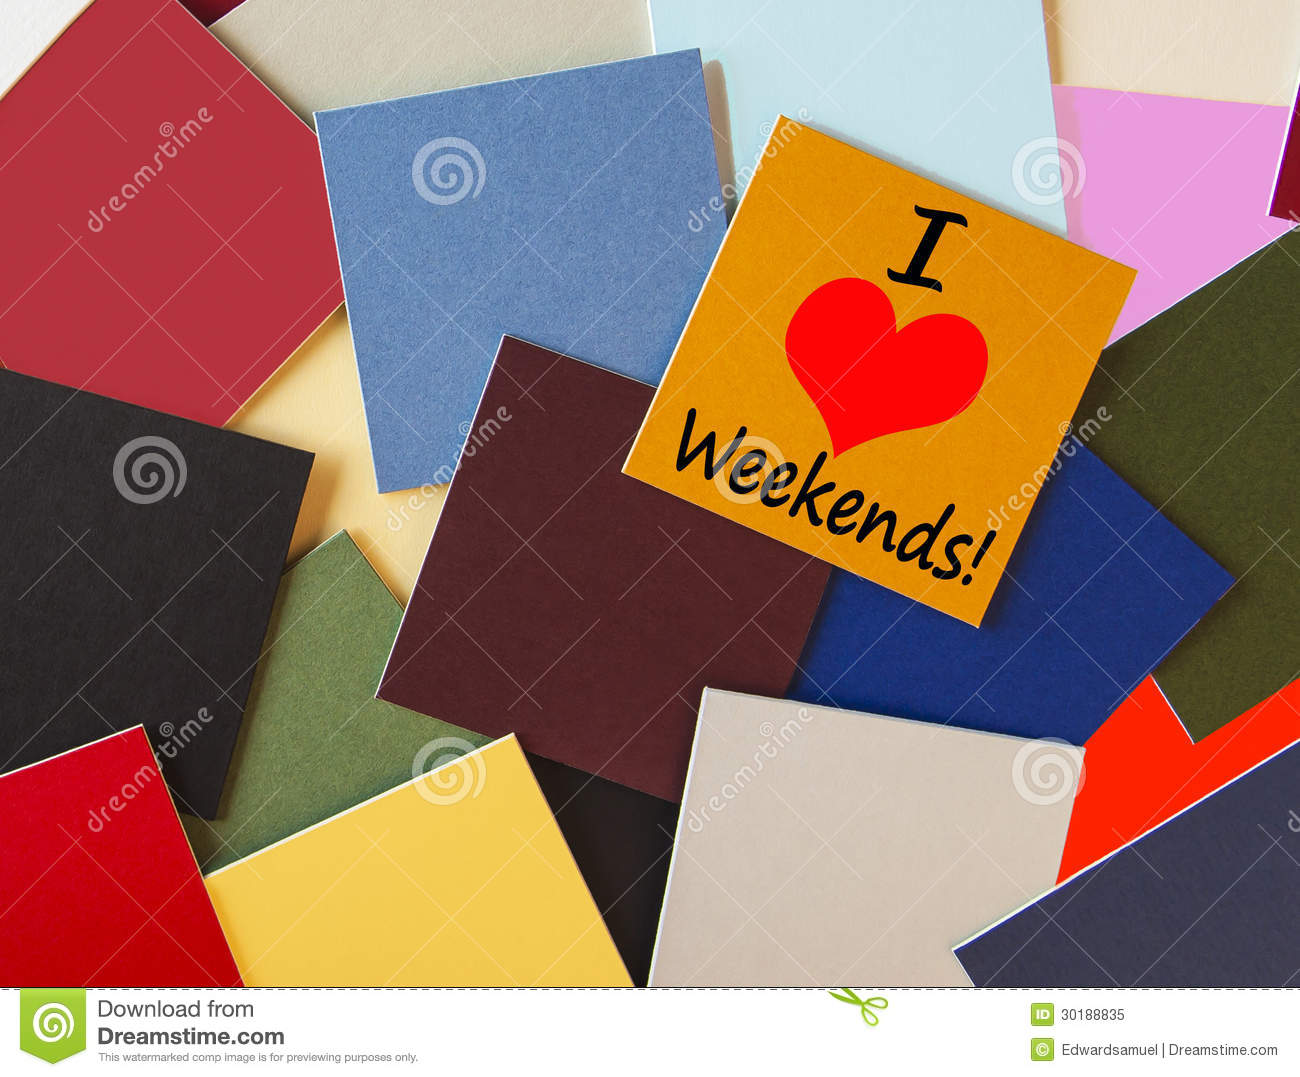 I Love Weekends! Sign for Business, Teaching, Office & Workers everywhere!